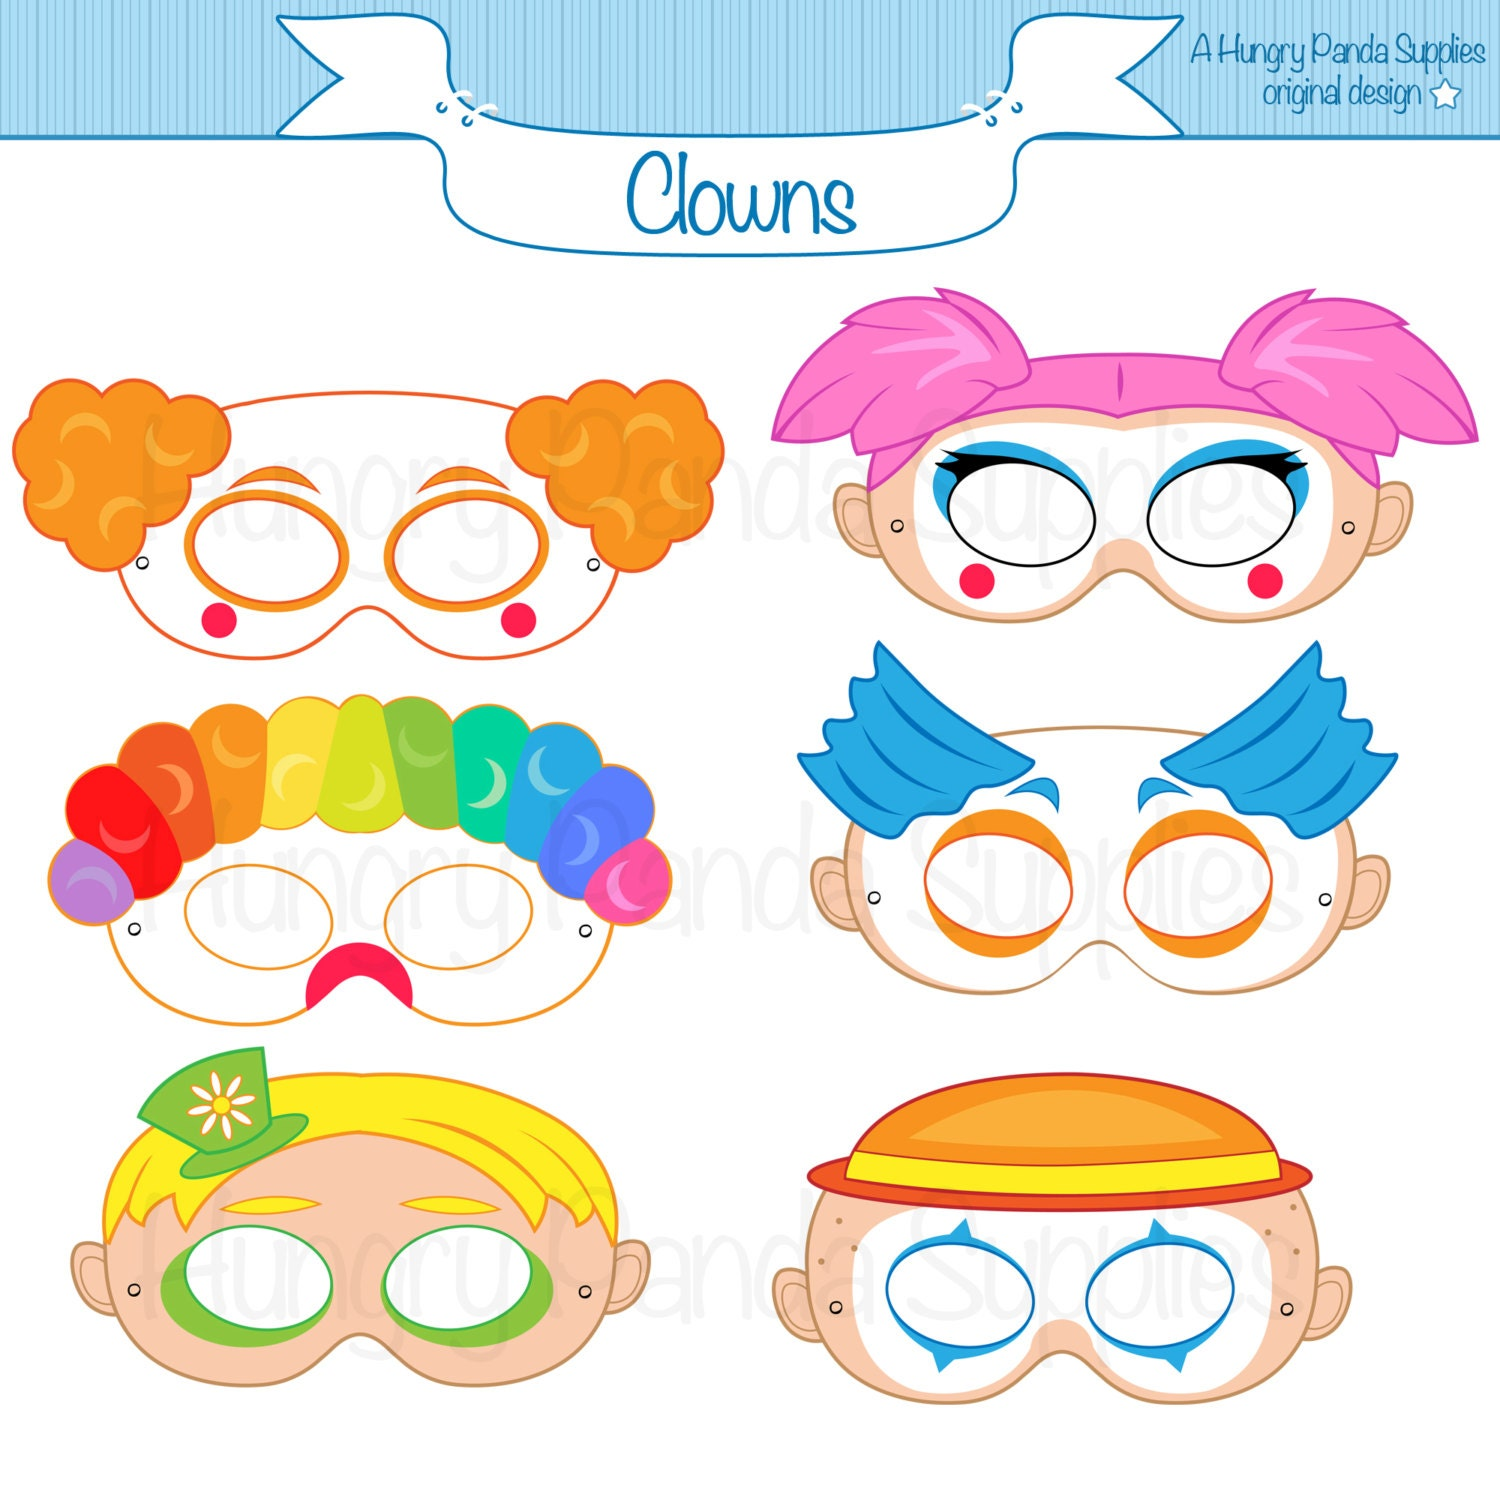 clown printable masks clown mask clown masks circus clown